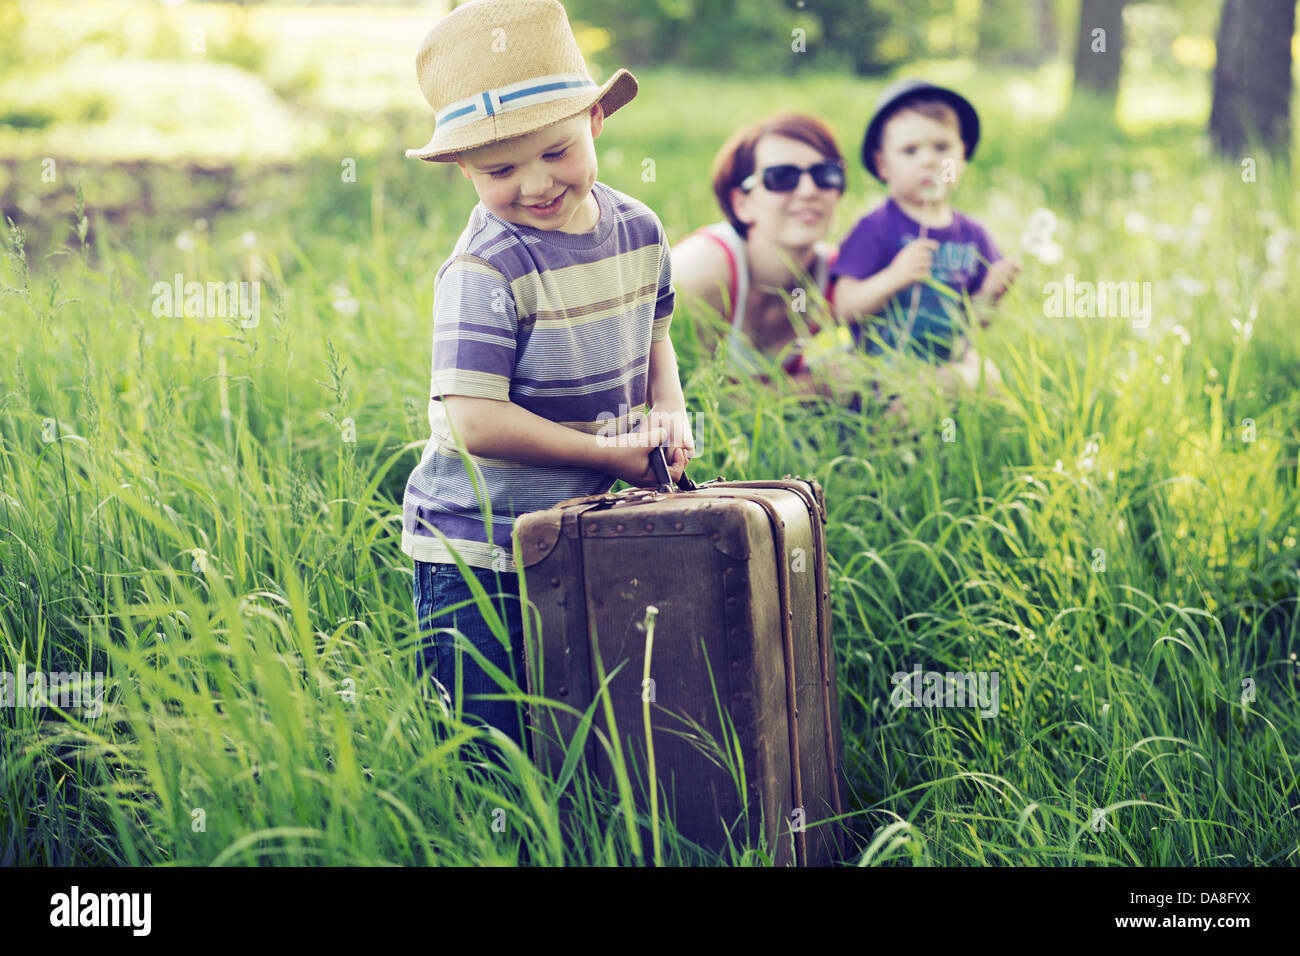 Cheerful family playing on green grass - Stock Image